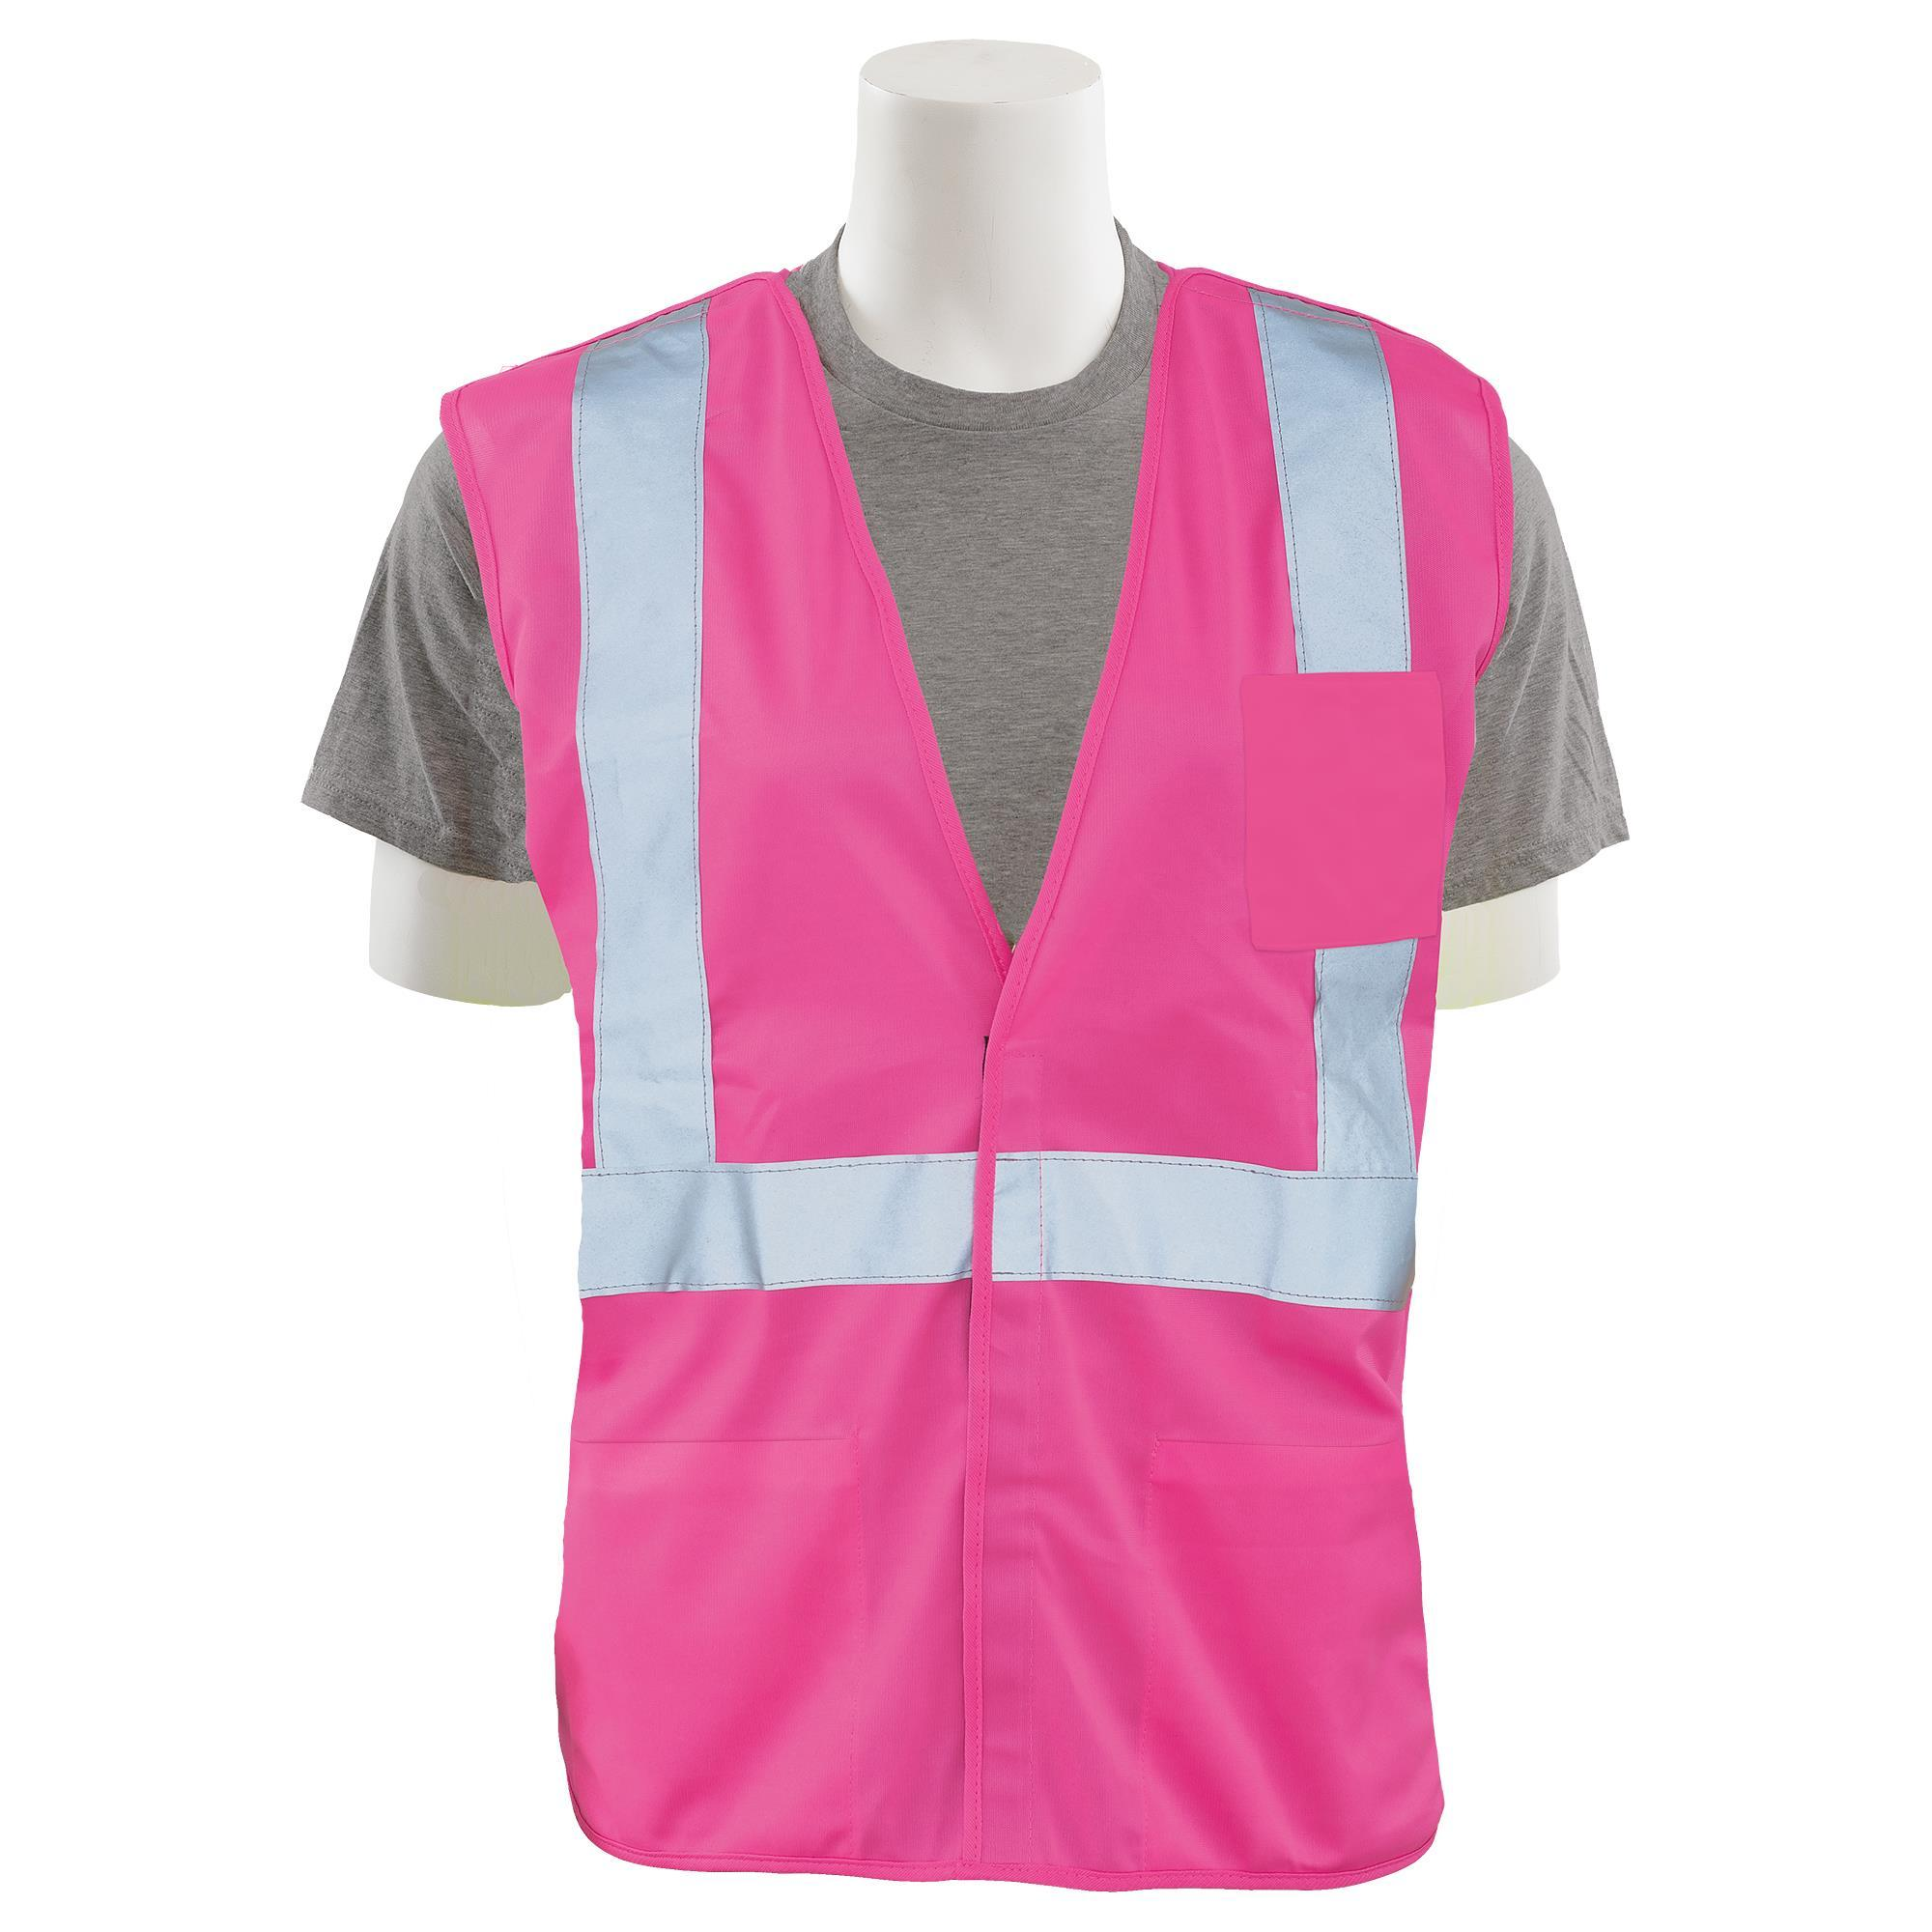 S362PNK Unisex Safety Vest Non-ANSI 1pc